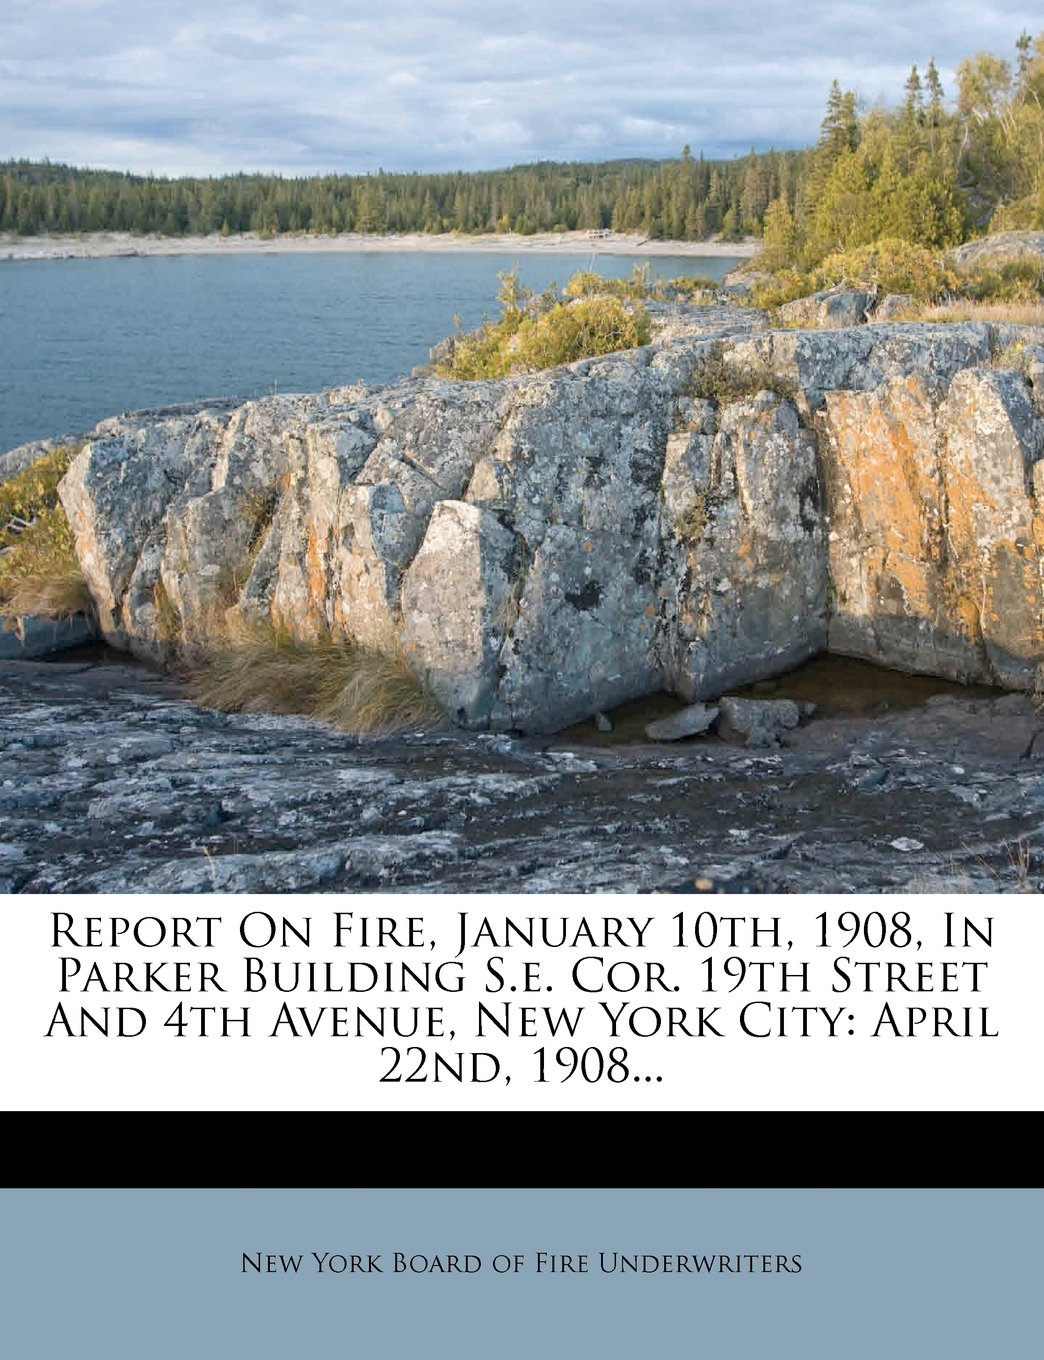 Download Report On Fire, January 10th, 1908, In Parker Building S.e. Cor. 19th Street And 4th Avenue, New York City: April 22nd, 1908... pdf